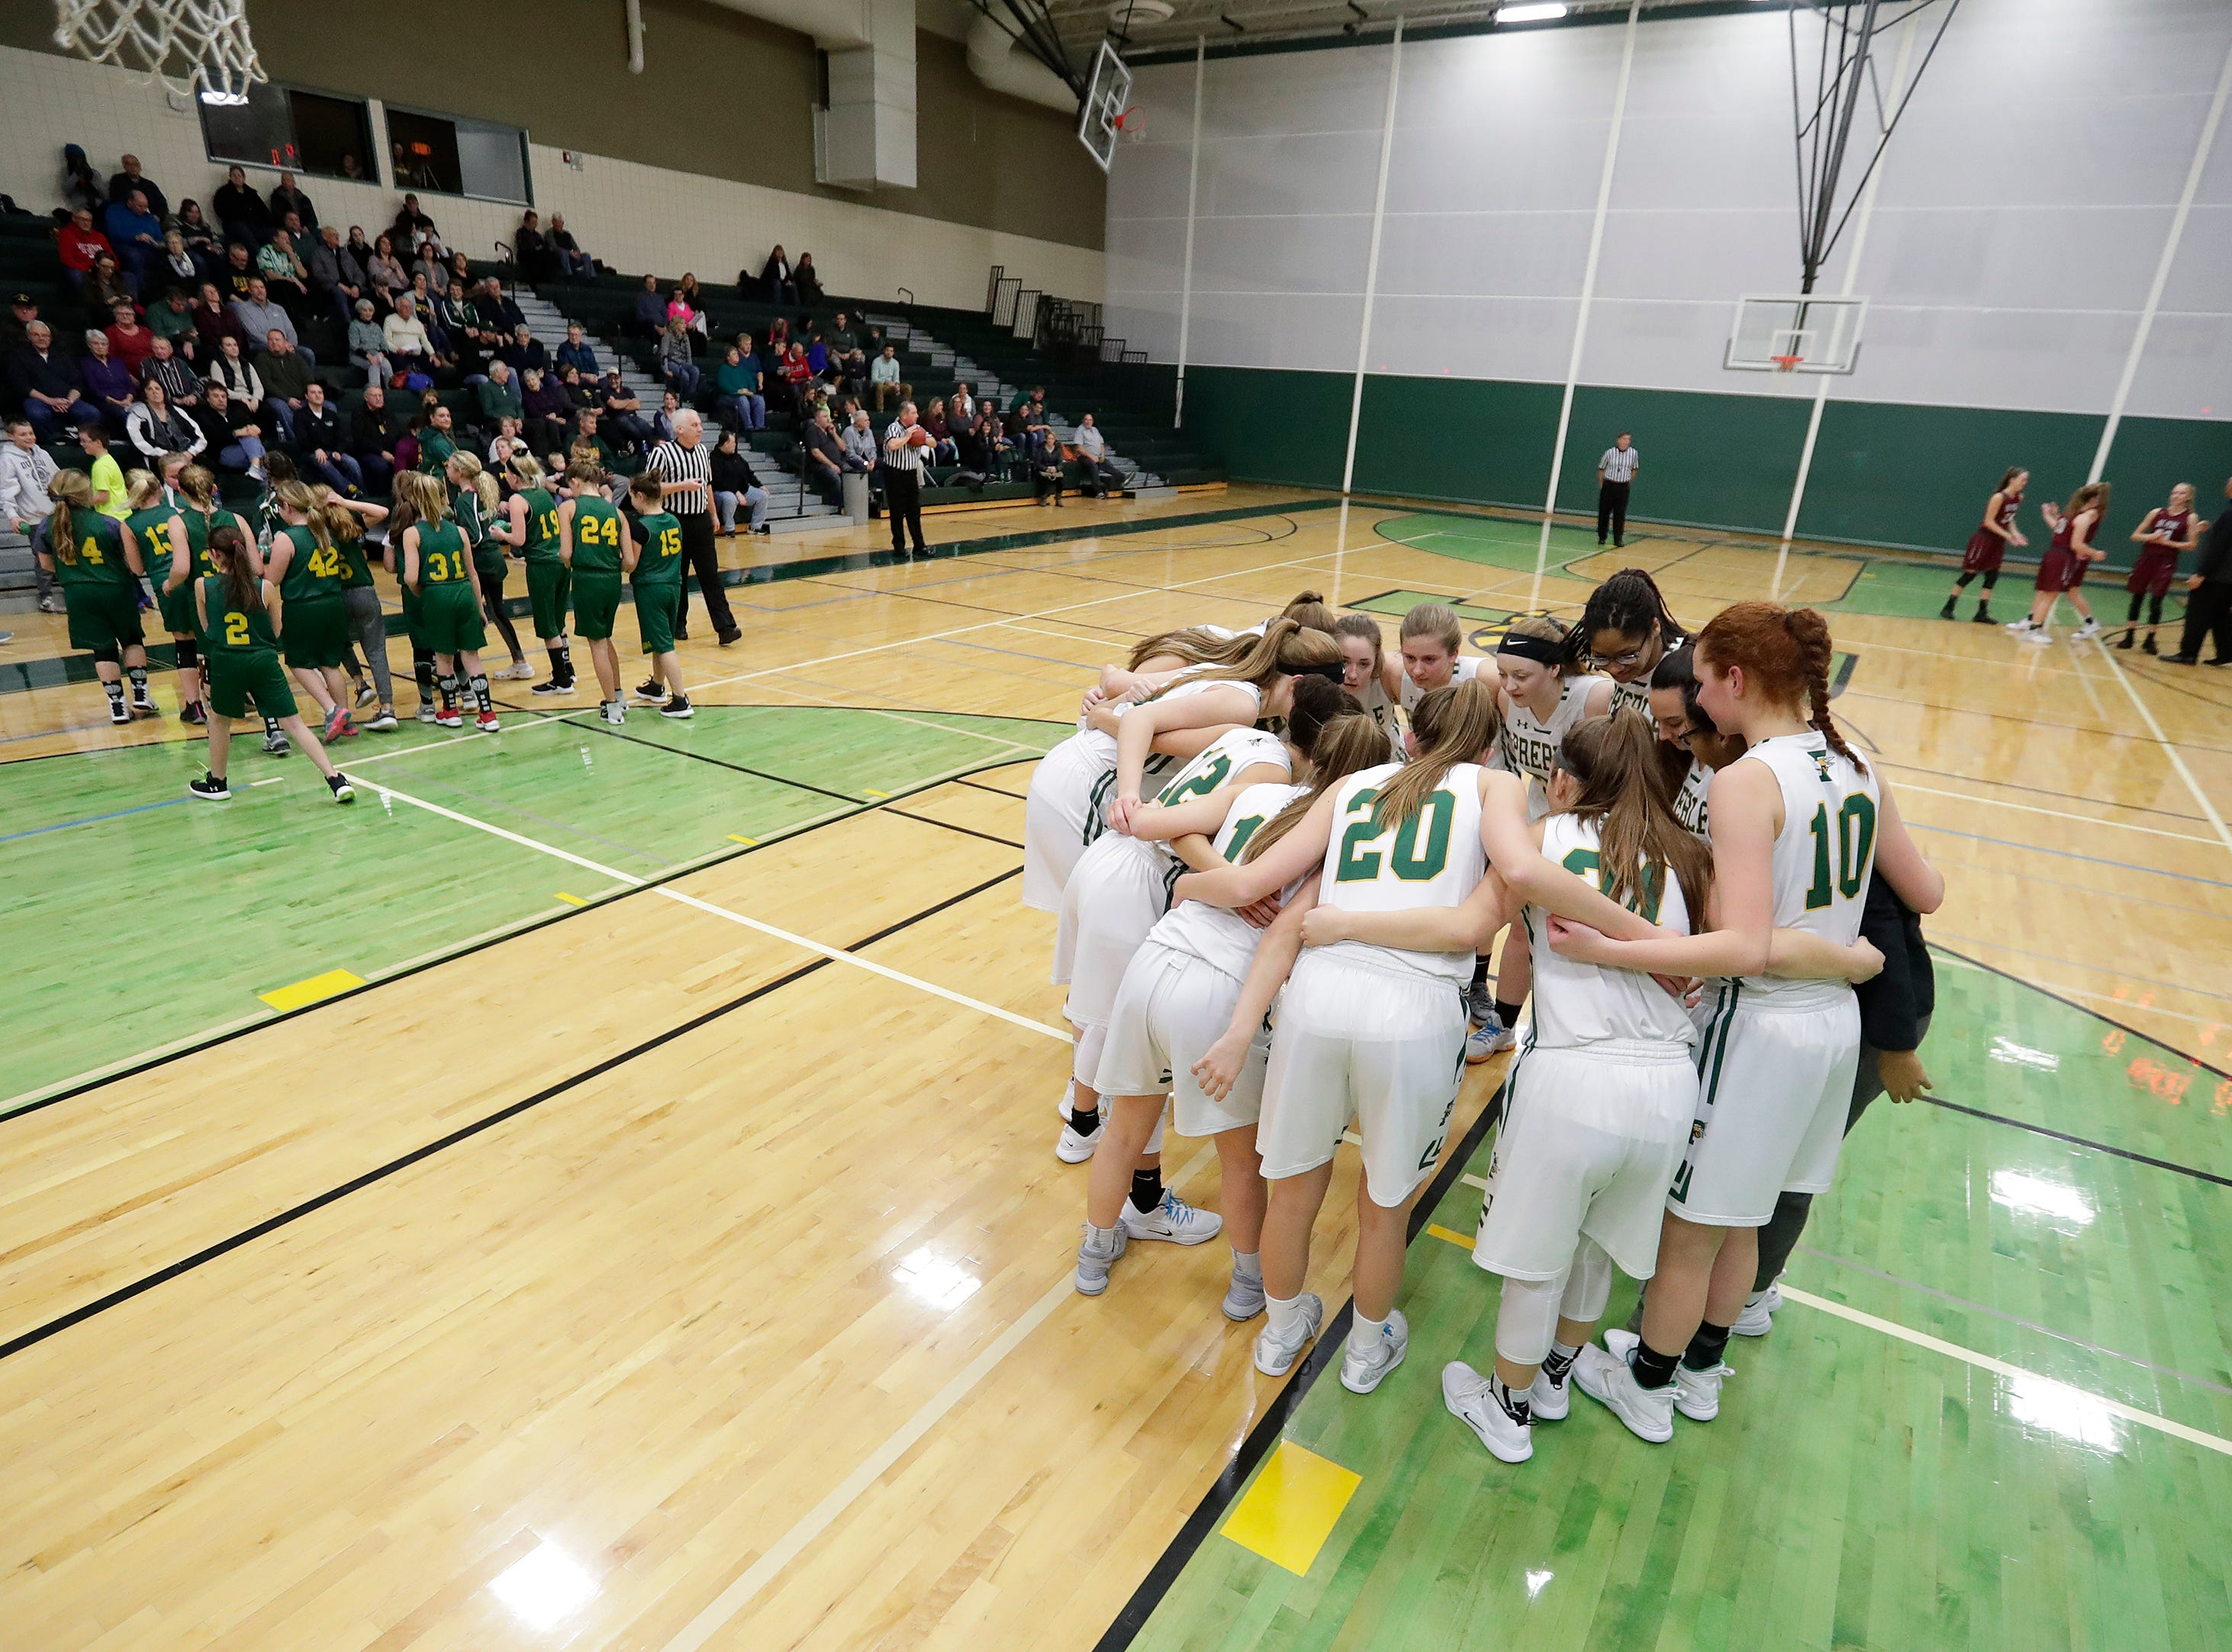 Green Bay Preble players huddle before facing De Pere in a girls basketball game at Preble high school on Tuesday, January 8, 2019 in Green Bay, Wis.